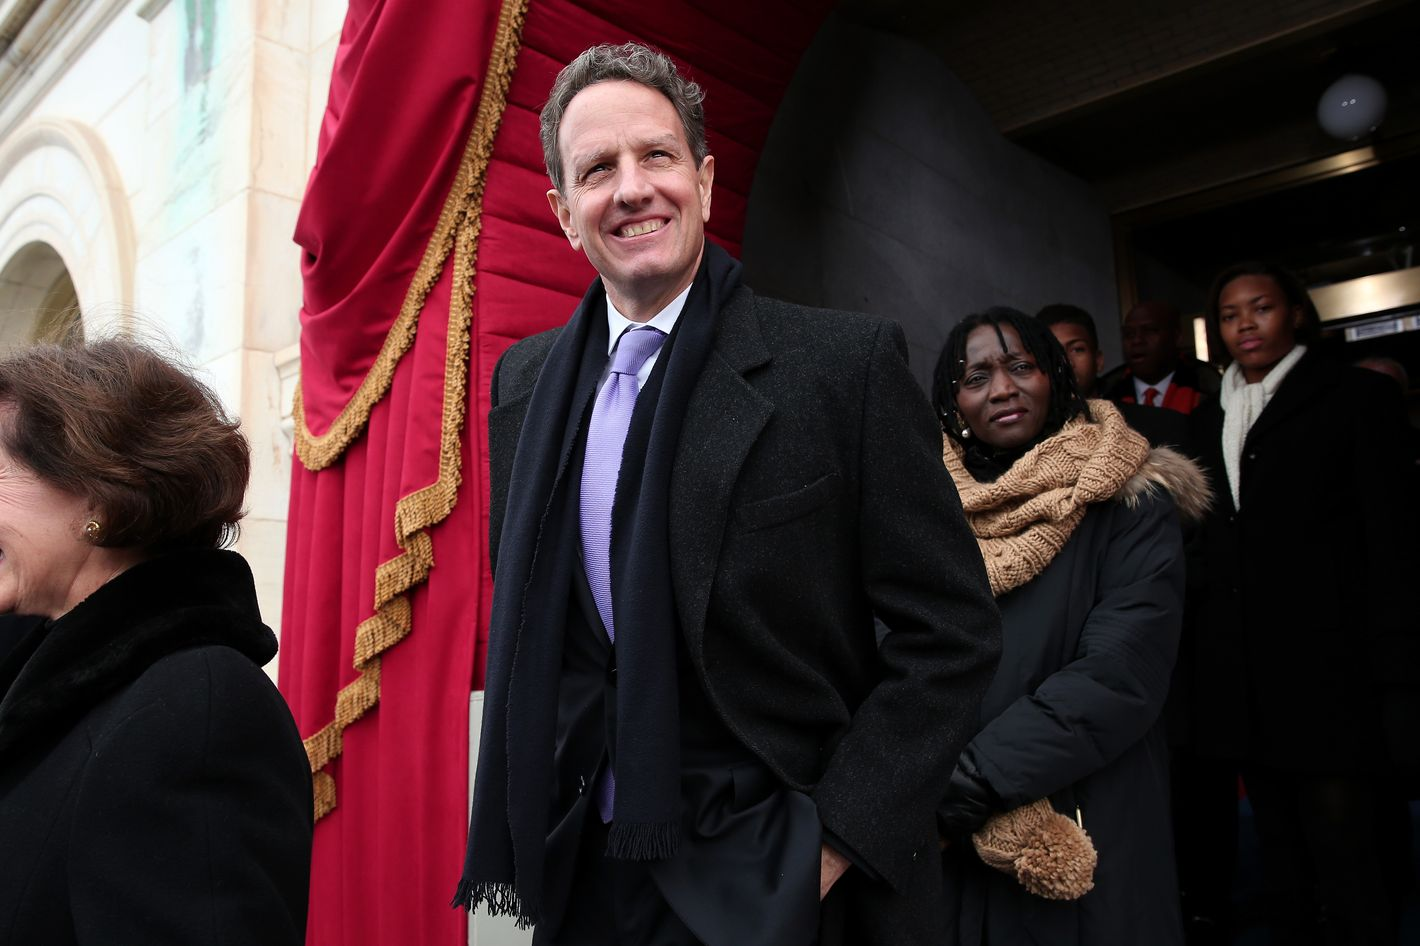 WASHINGTON, DC - JANUARY 21: Outgoing U.S. Treasury Secretary Timothy Geithner arrives during the presidential inauguration for U.S. President Barack Obama on the West Front of the U.S. Capitol January 21, 2013 in Washington, DC.   Barack Obama was re-elected for a second term as President of the United States.  (Photo by Win McNamee/Getty Images)